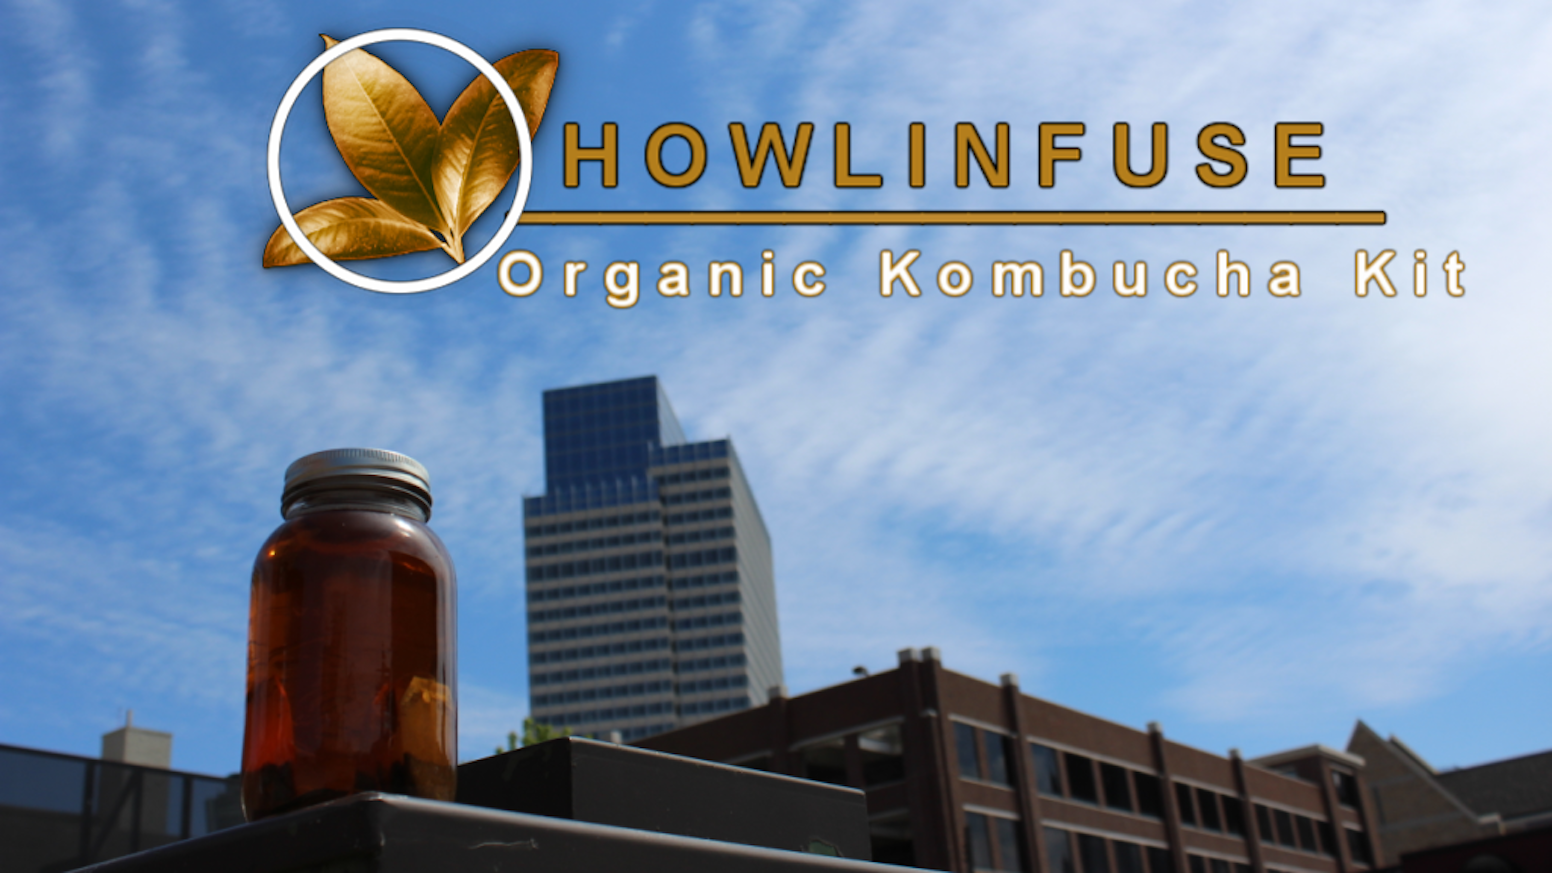 A Certified Organic Kombucha Tea Kit - monthly, you will use organic ingredients and tools to brew at home with extra wholesome goodies